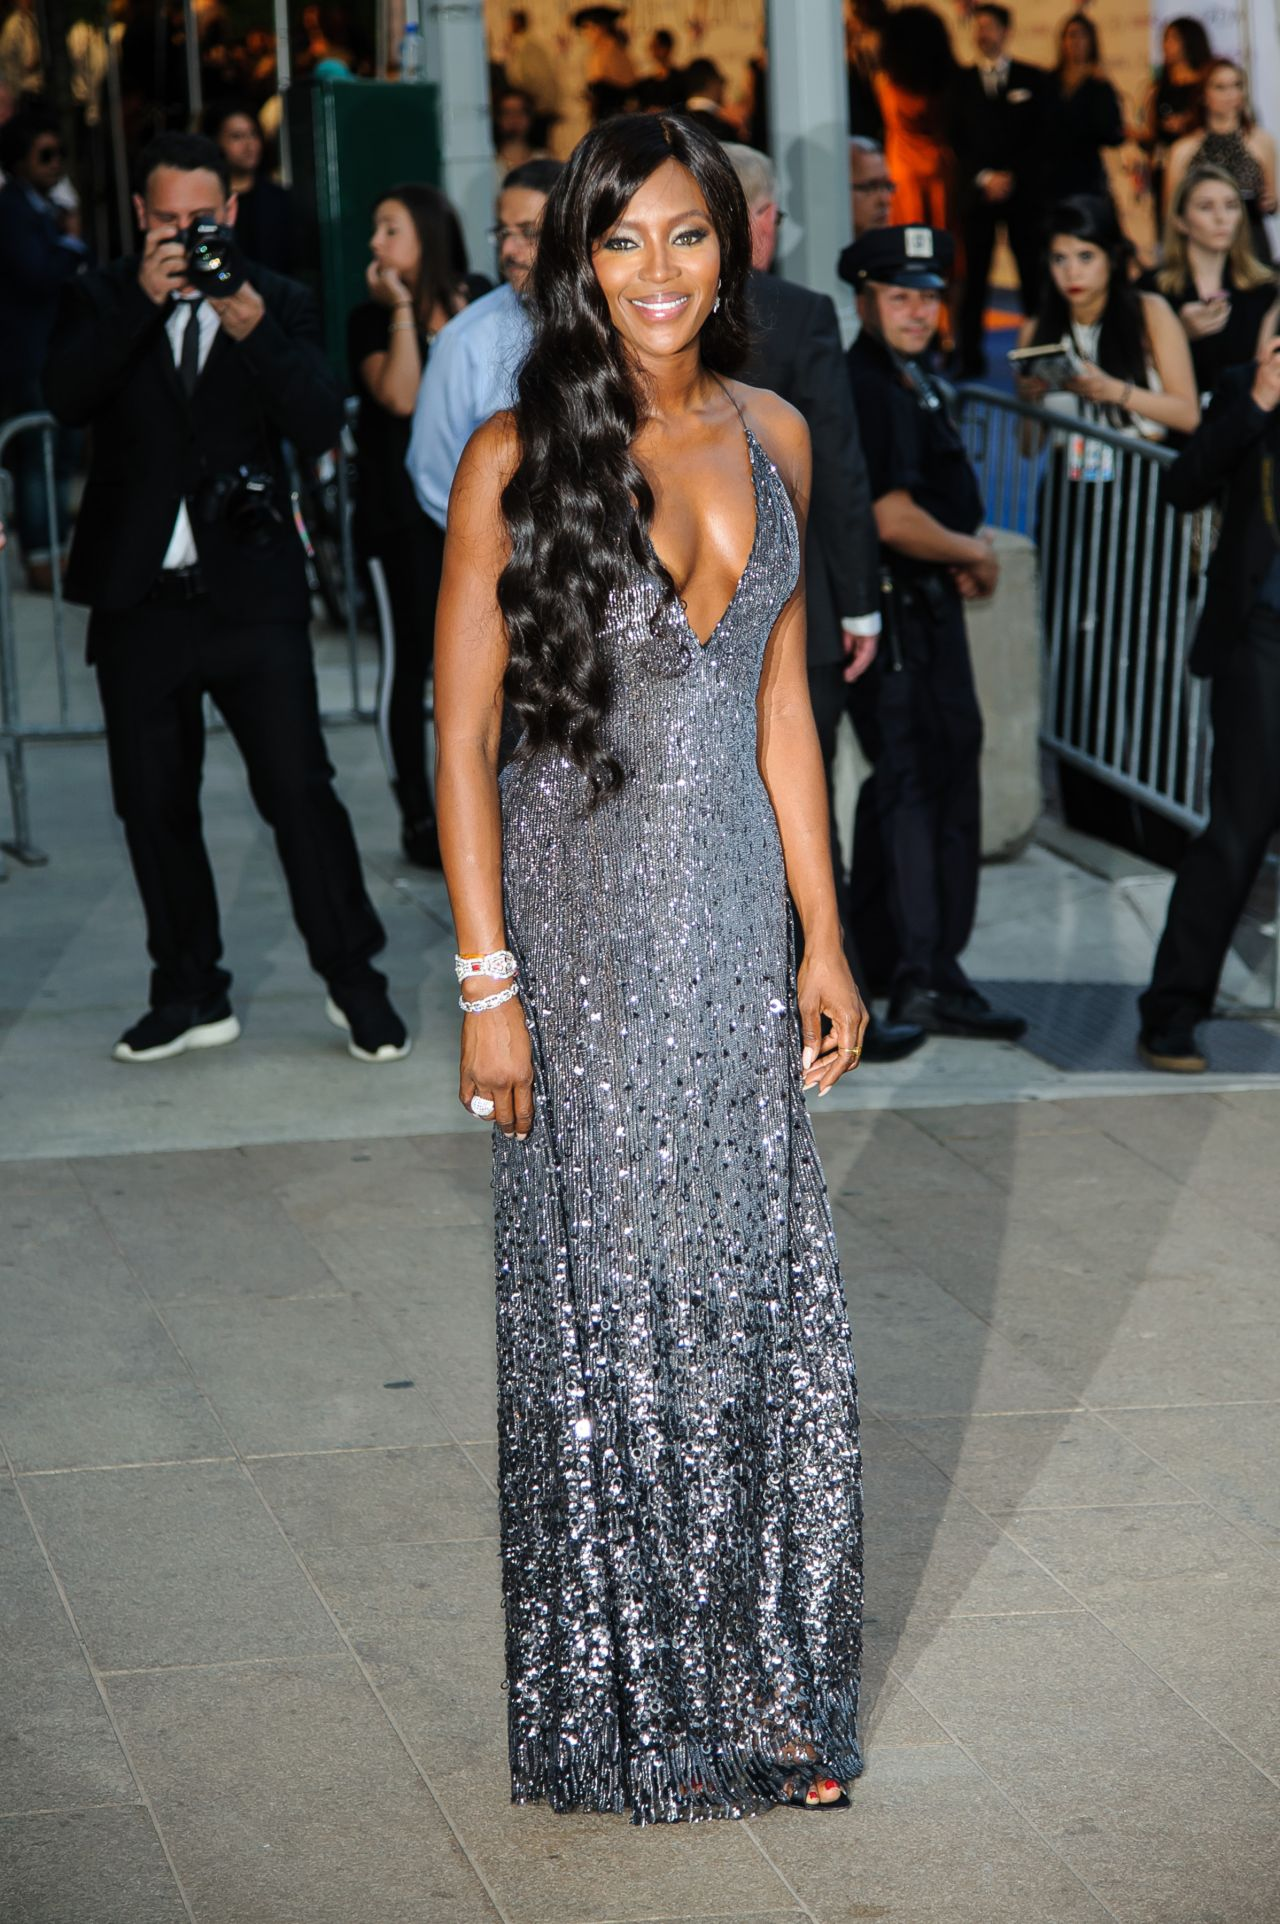 naomi-campbell-in-diane-von-furstenber-dress-at-2014-cfda-fashion-awards_7